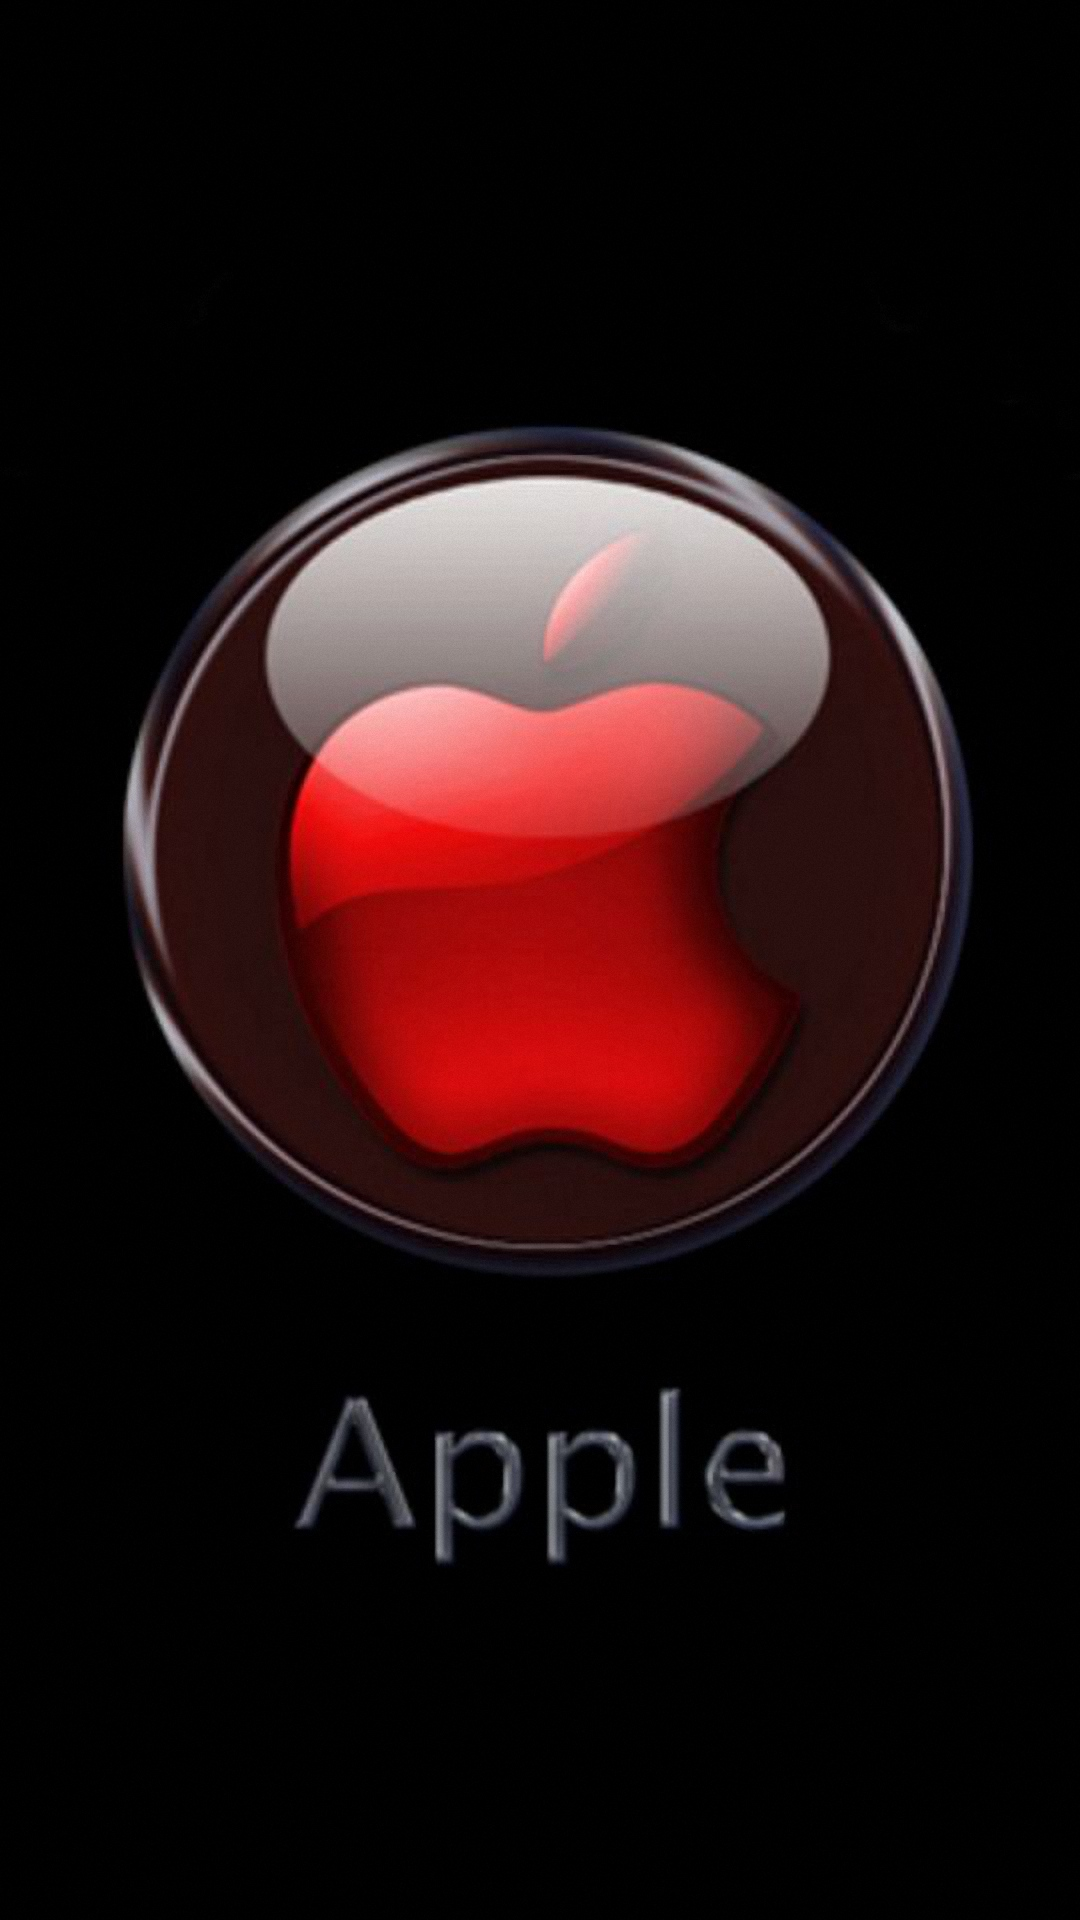 cool apple logos hd. wallpaper.wiki-high-resolution-apple-logo-for-iphone- cool apple logos hd